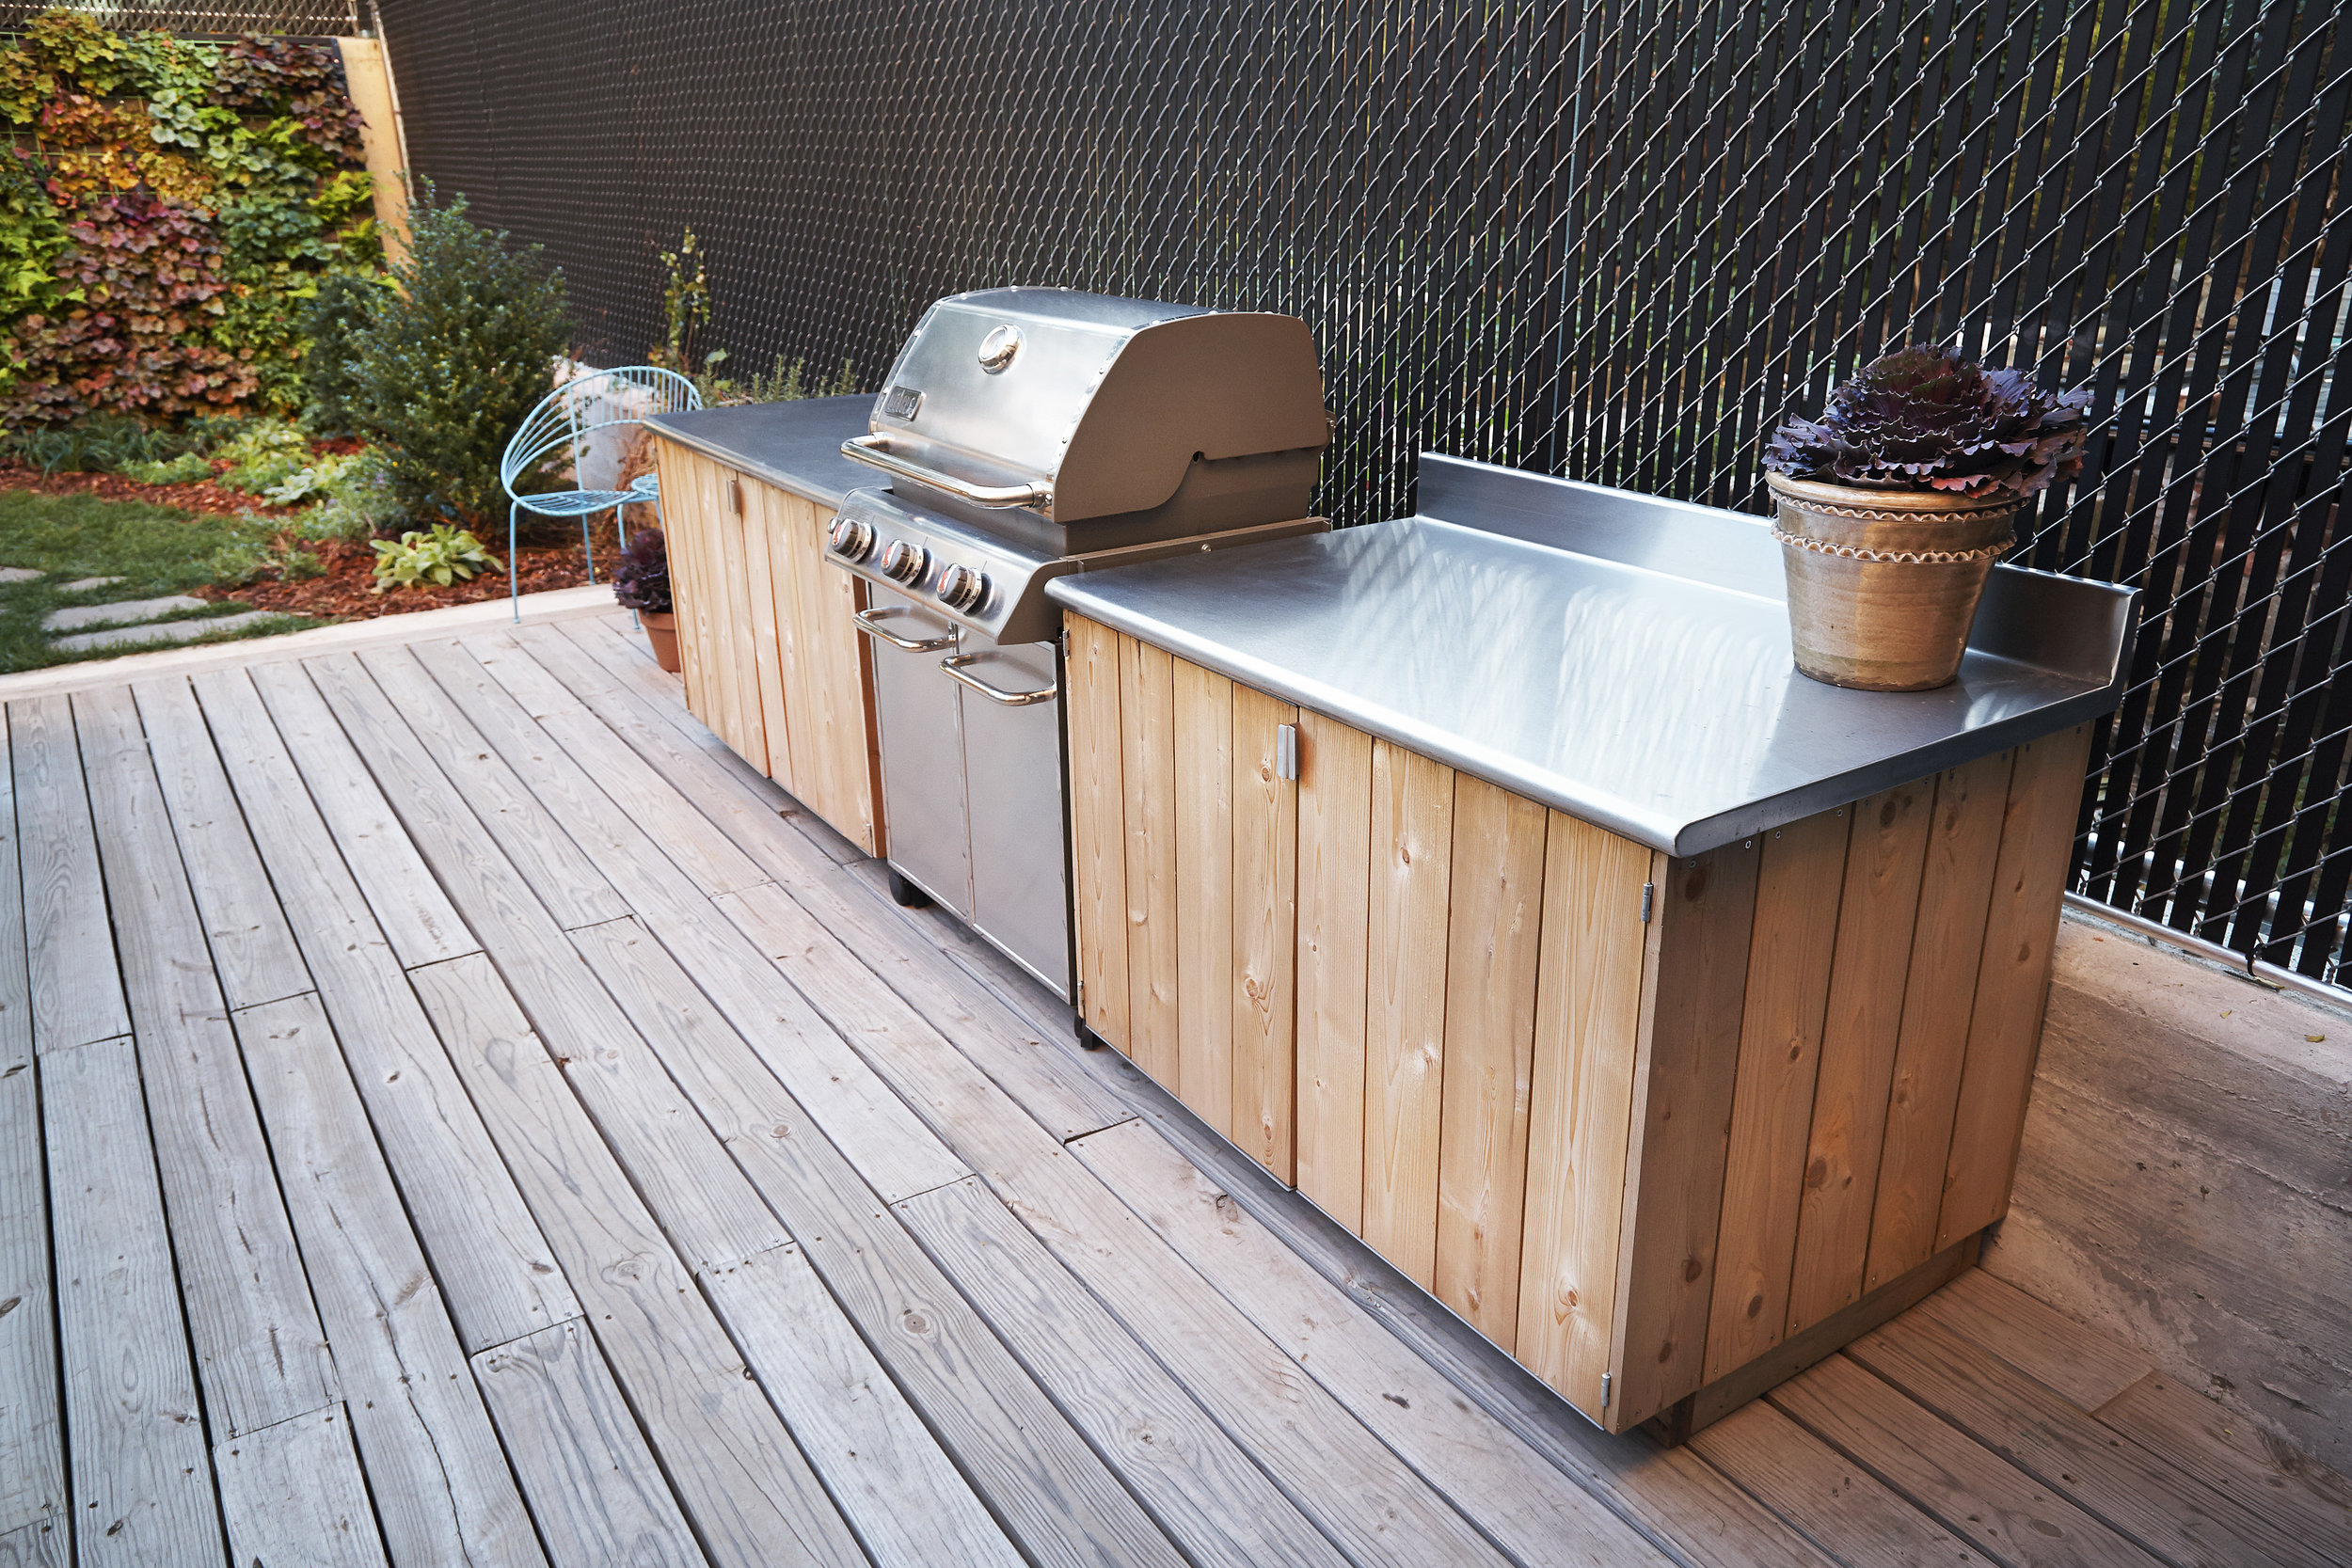 outdoor_kitchen_counter_NYC.jpg